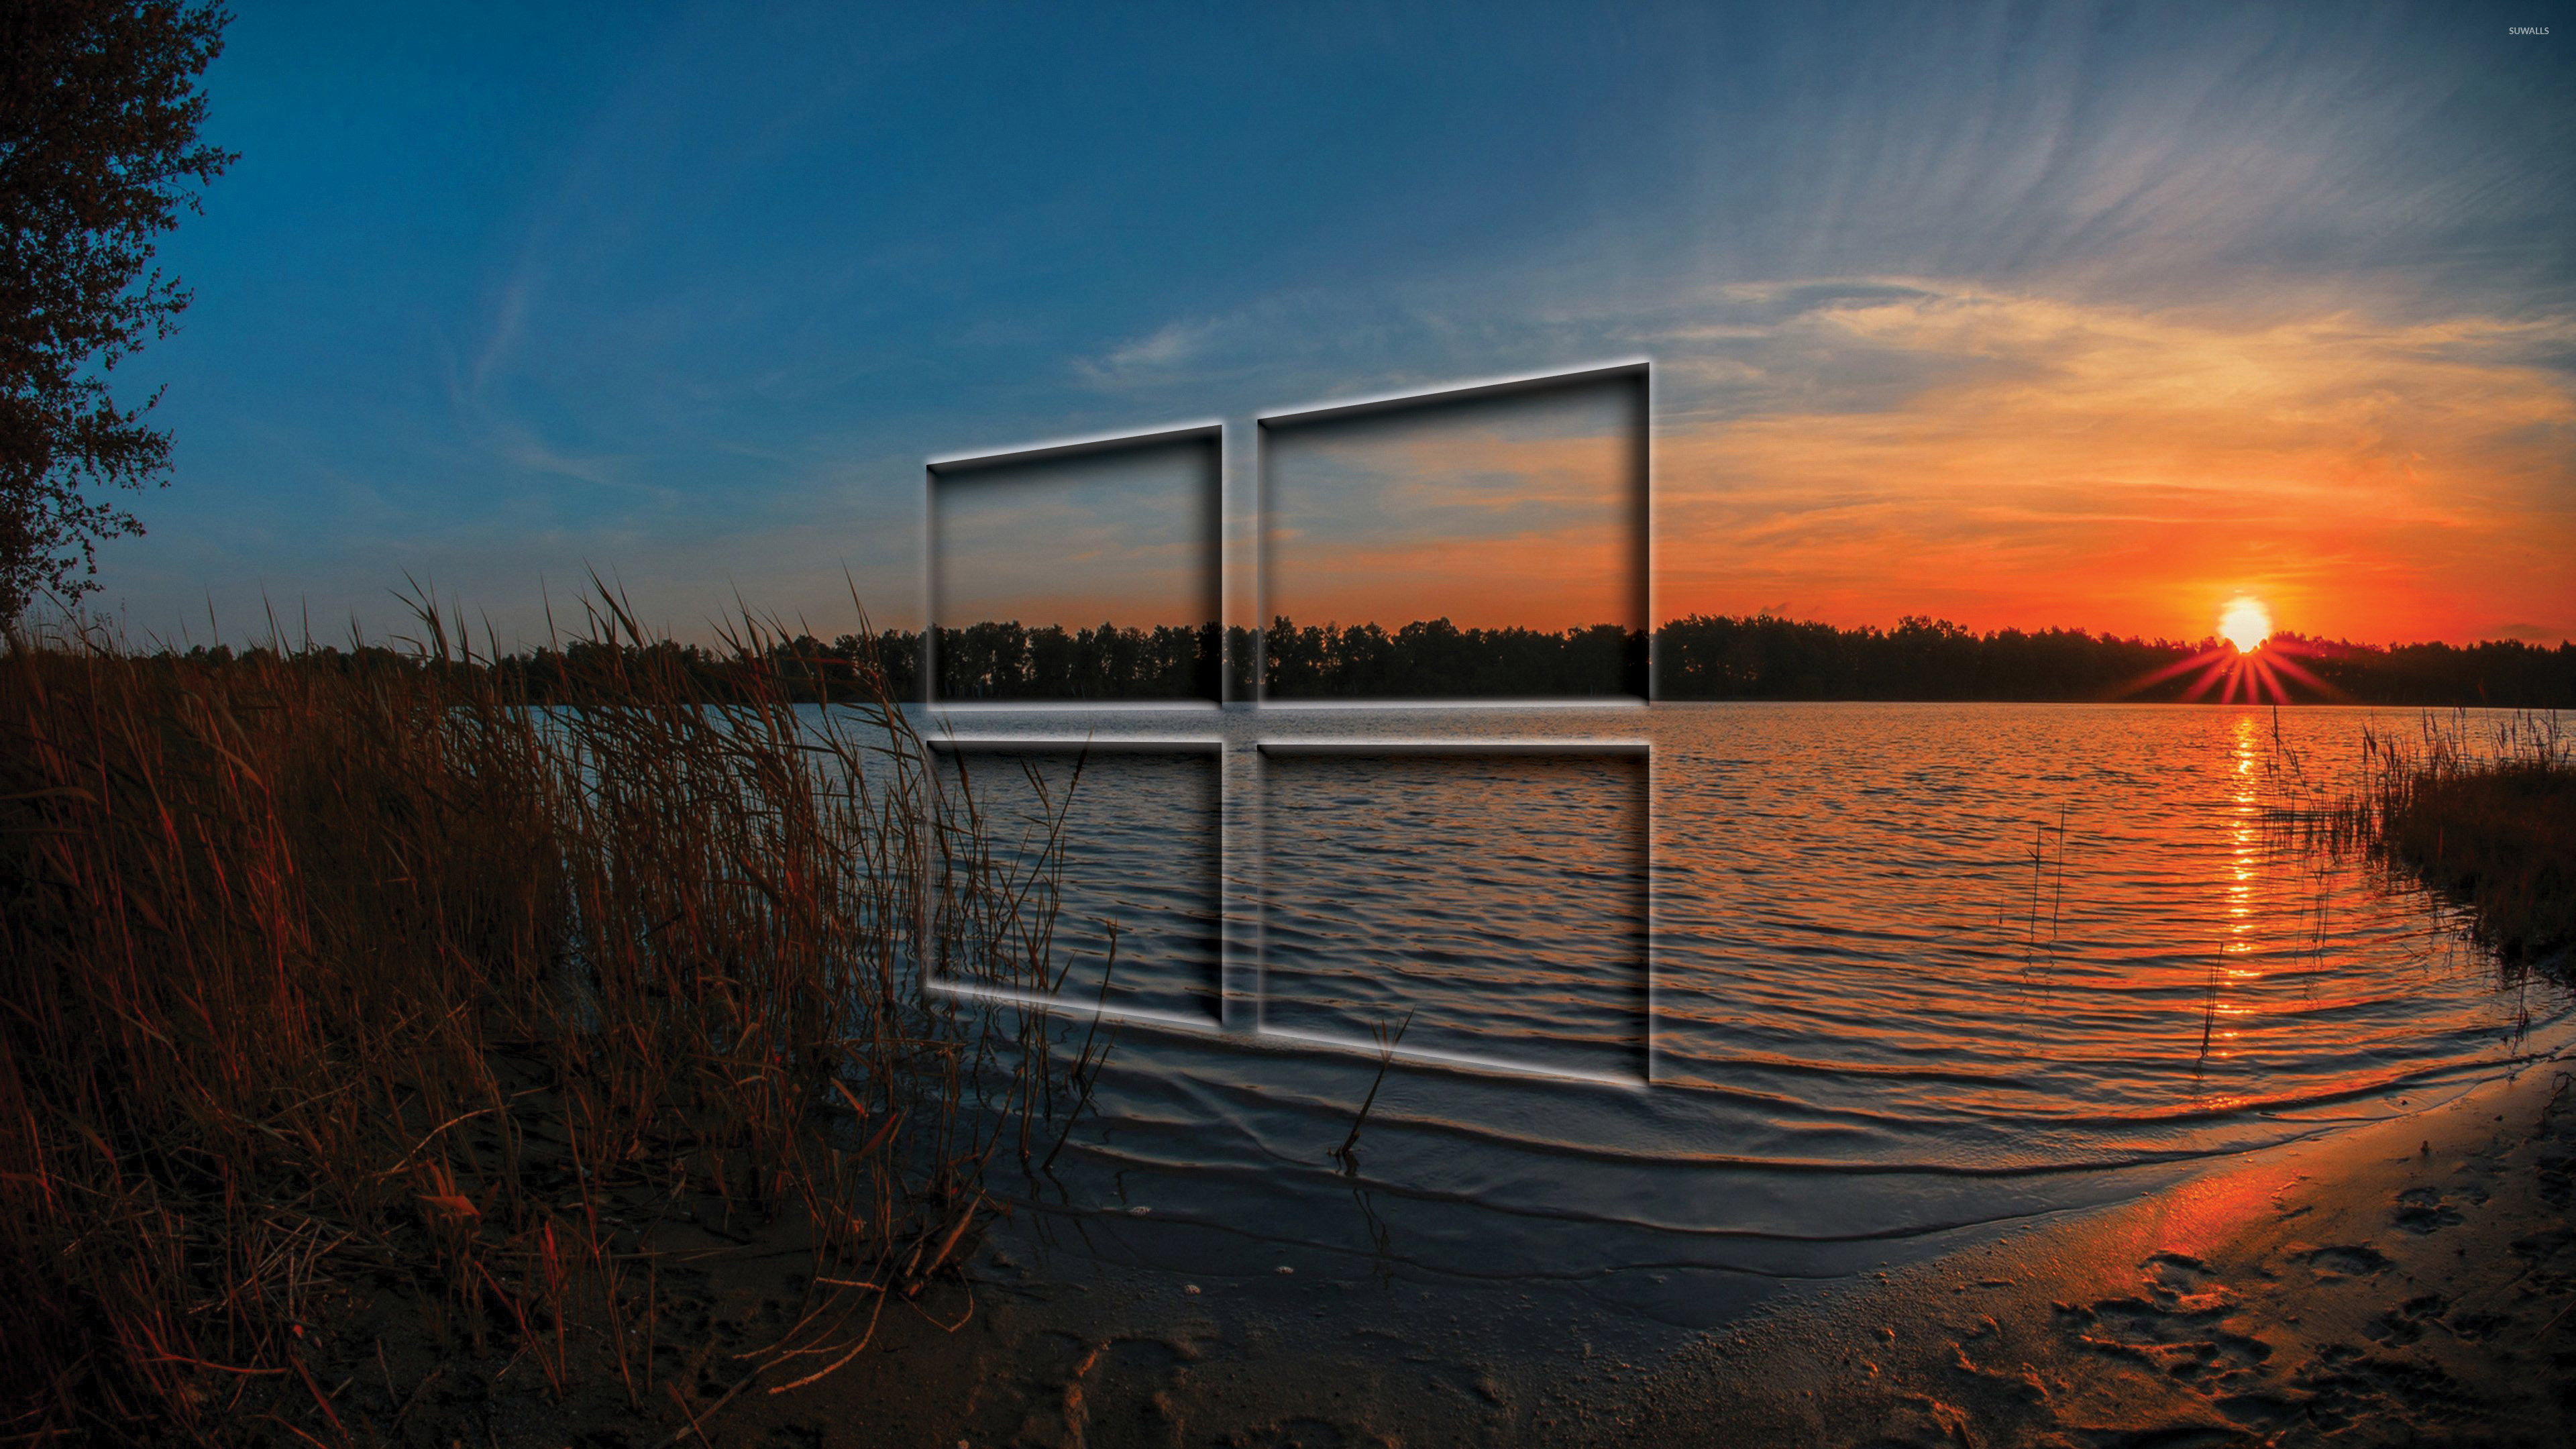 Windows 10 Transparent Logo In The Sunset Wallpaper